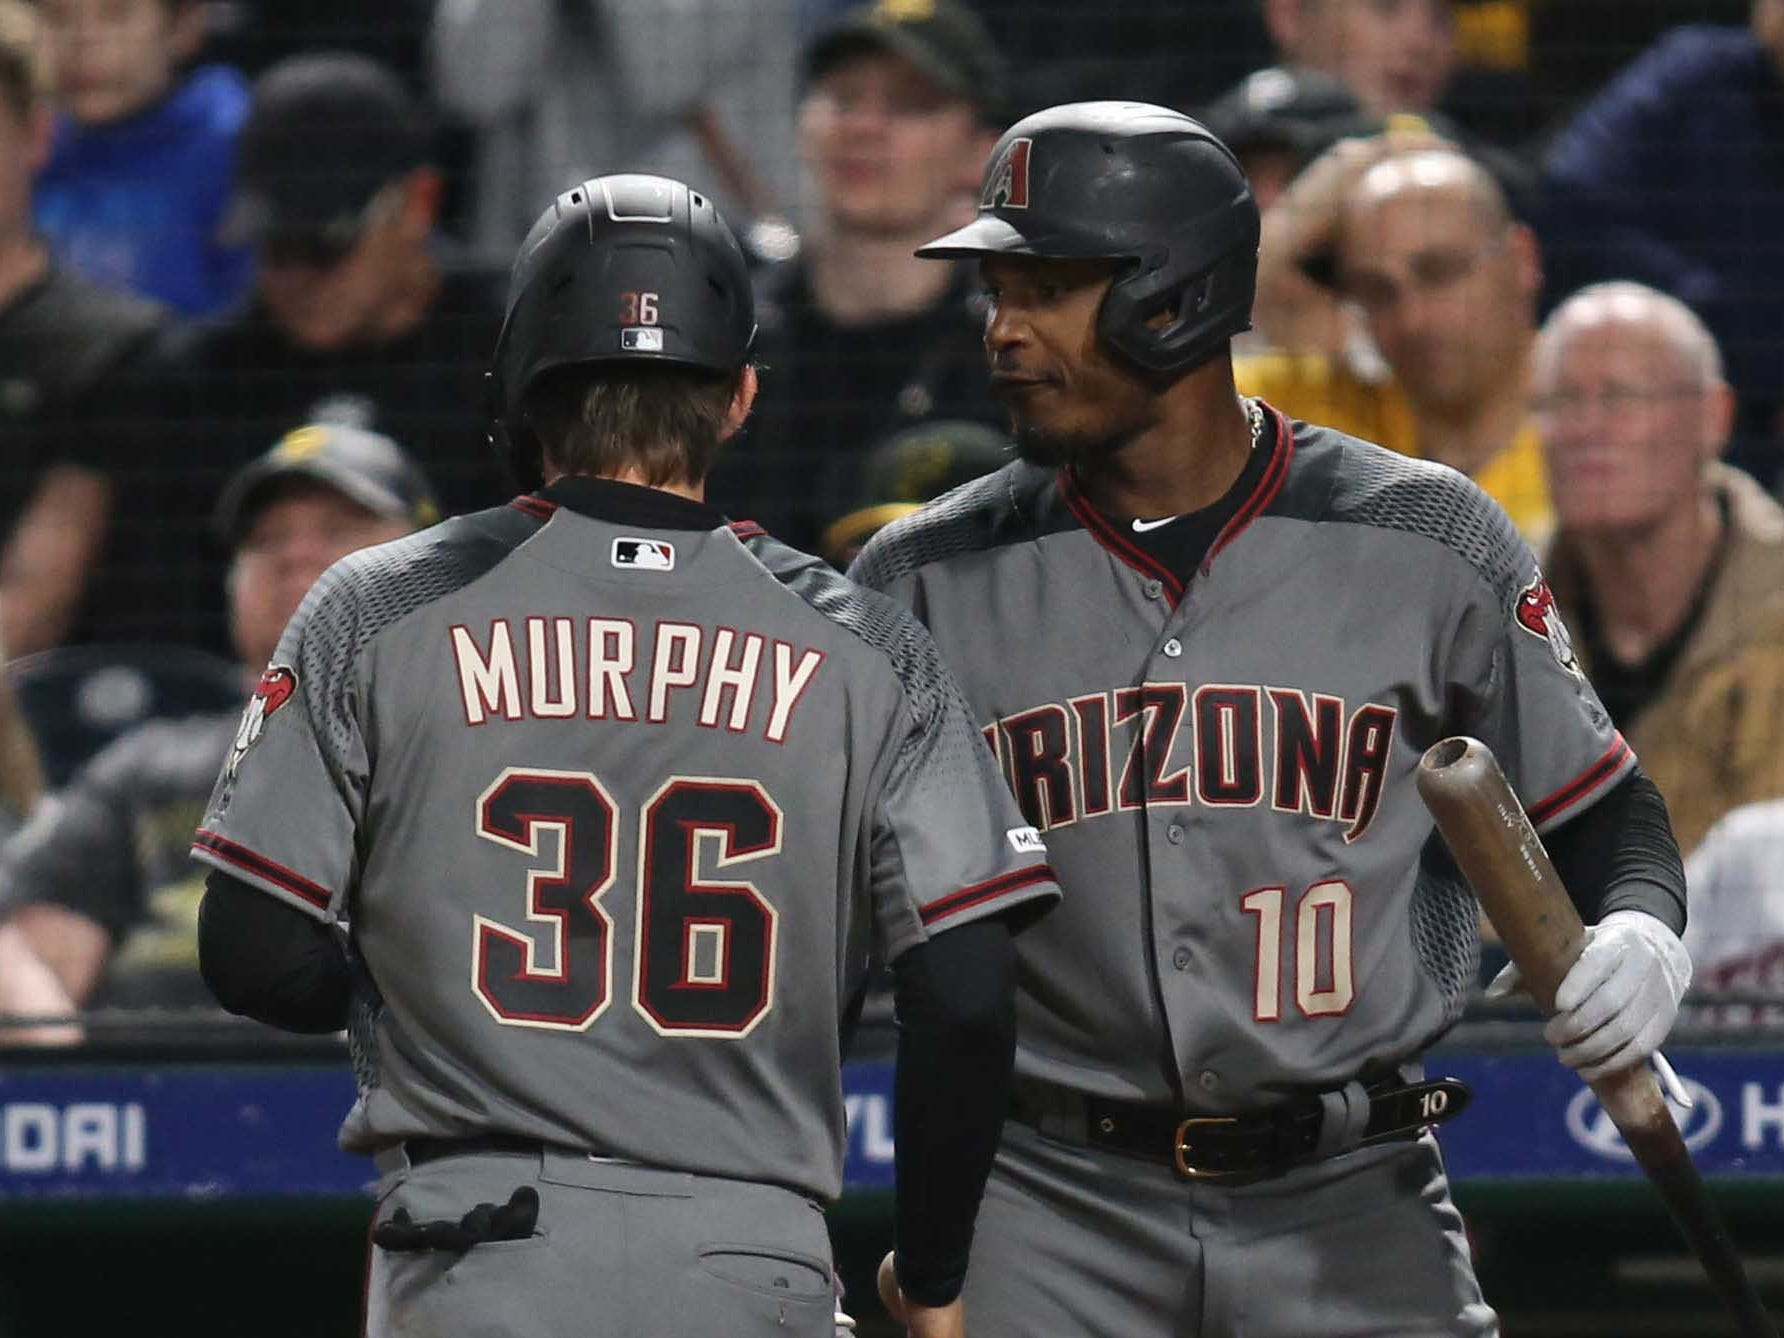 Apr 22, 2019; Pittsburgh, PA, USA;  Arizona Diamondbacks catcher John Ryan Murphy (36) celebrates with right fielder Adam Jones (10) after scoring a run against the Pittsburgh Pirates during the seventh inning at PNC Park.